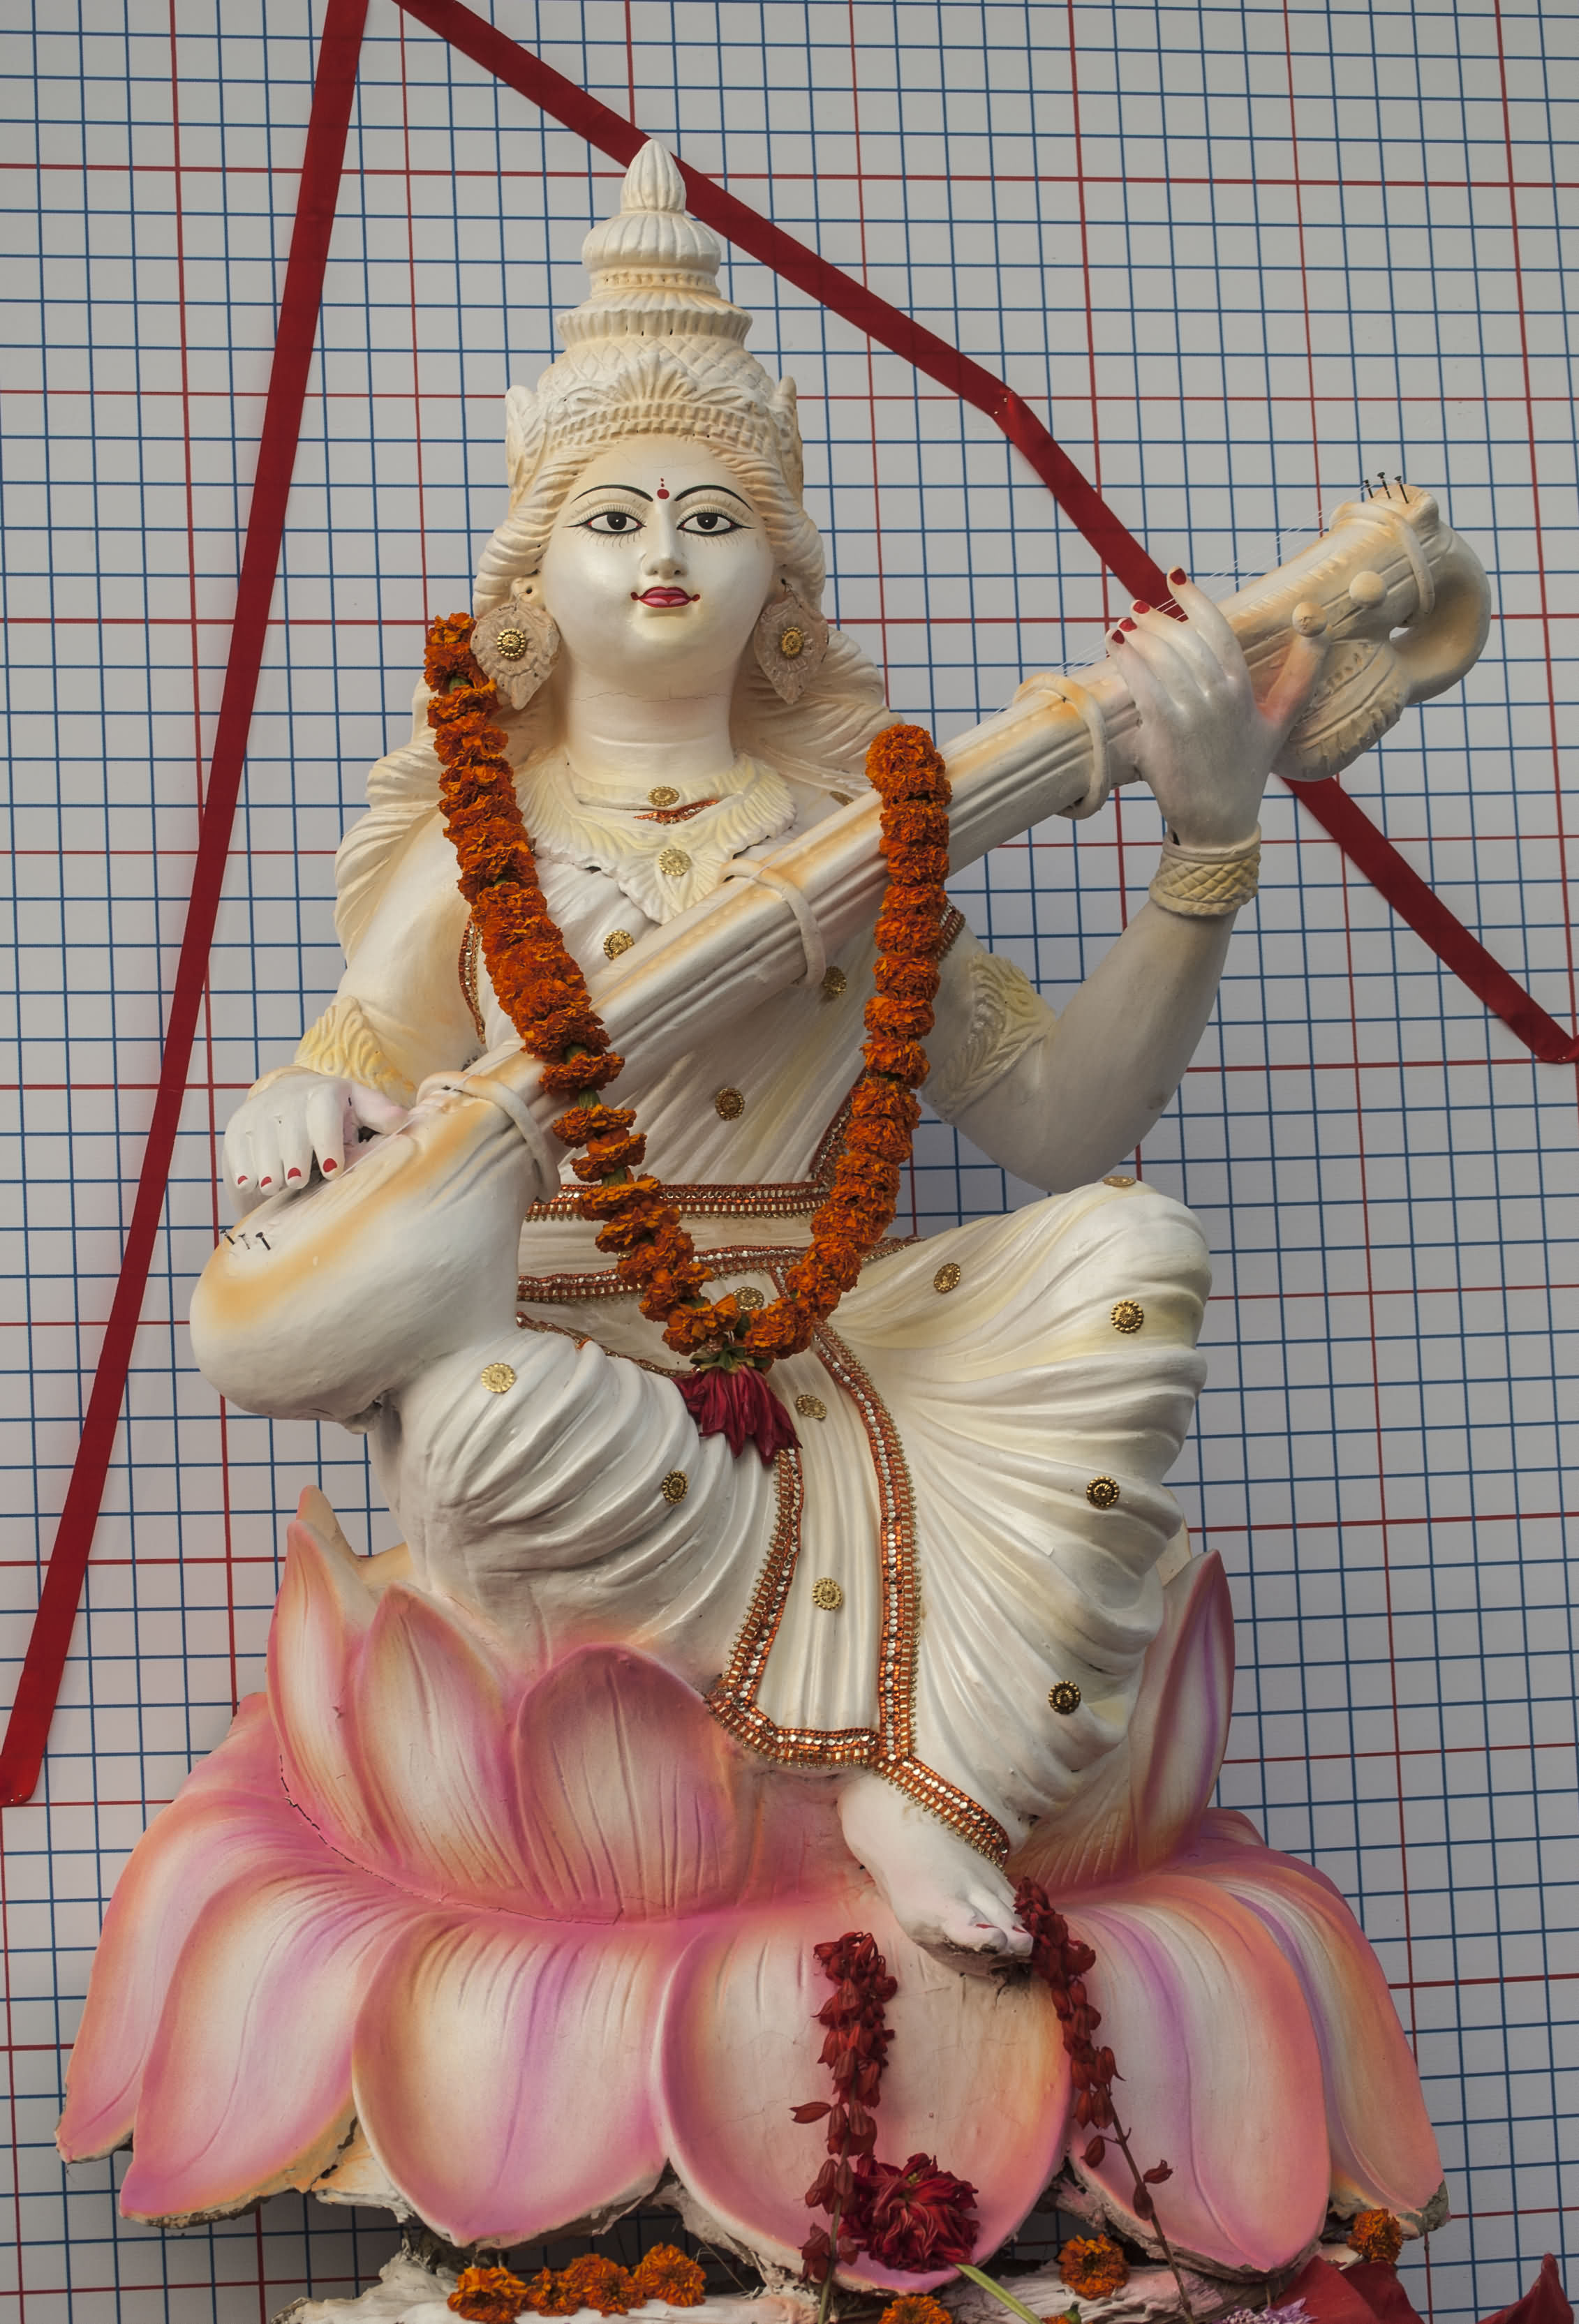 Saraswati Devi Is A Hindu Goddess Of Knowledge, Wisdom And ...